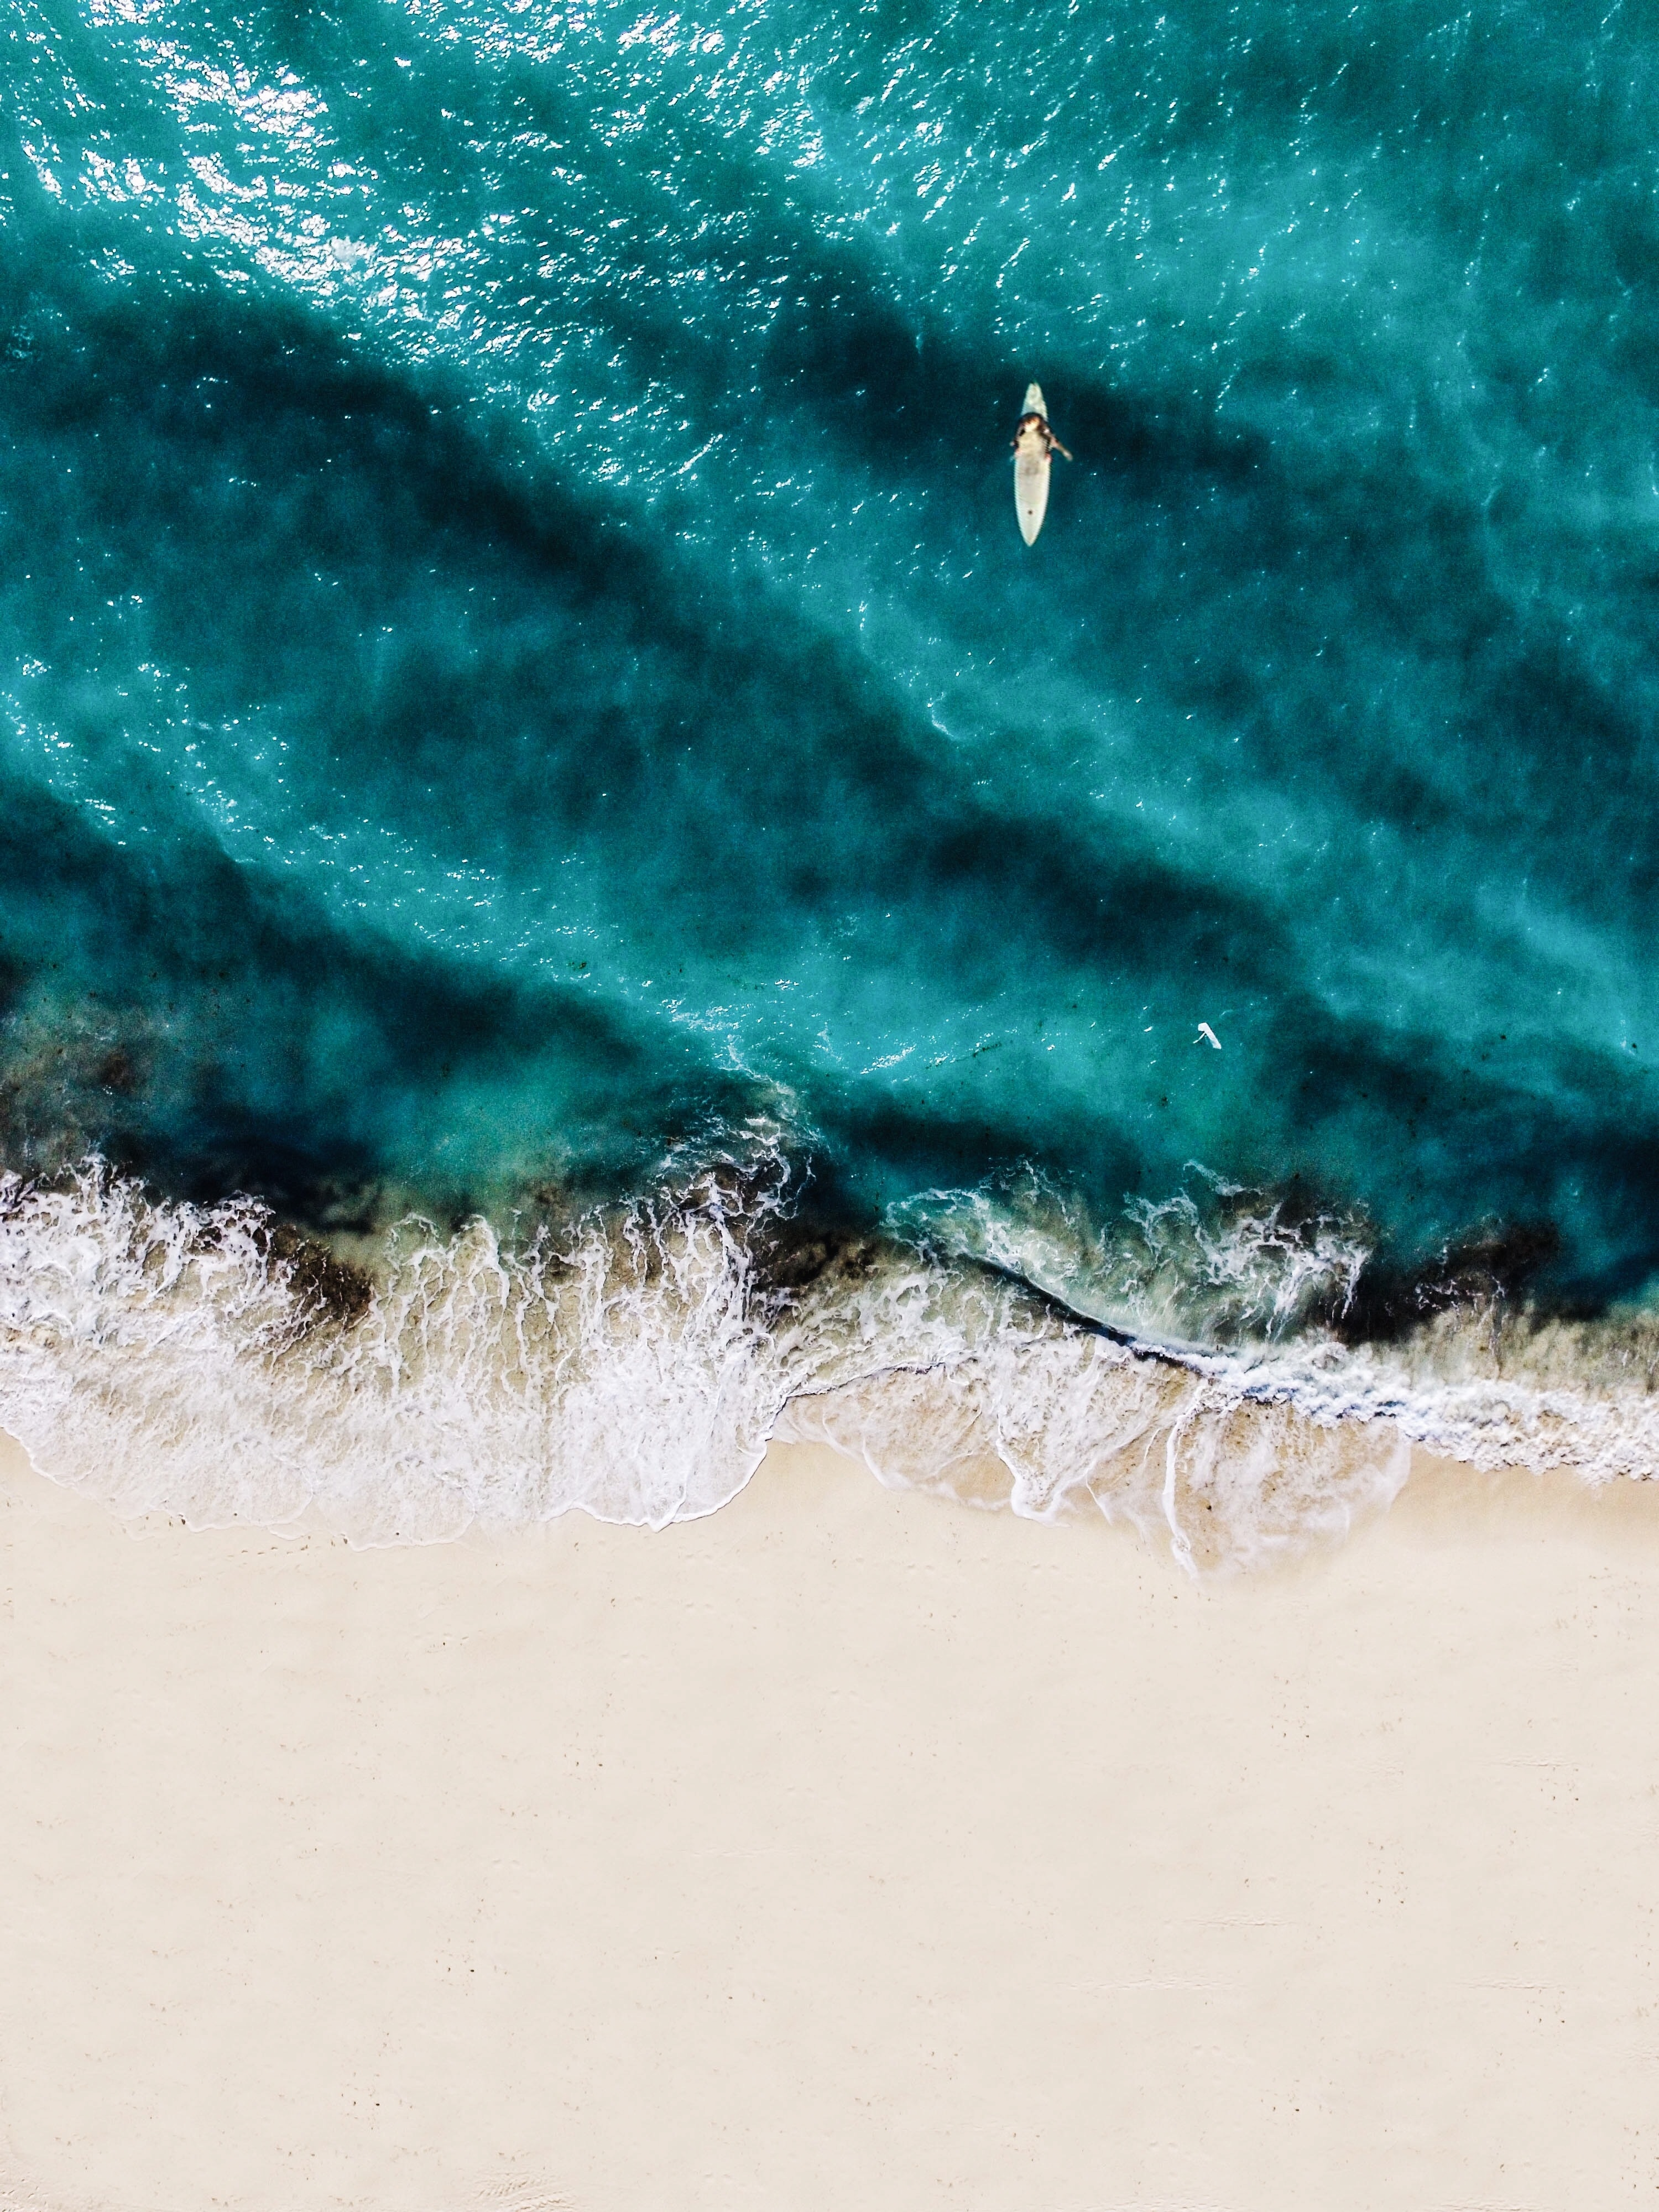 aerial photography of person doing surfboard on body of water at daytime